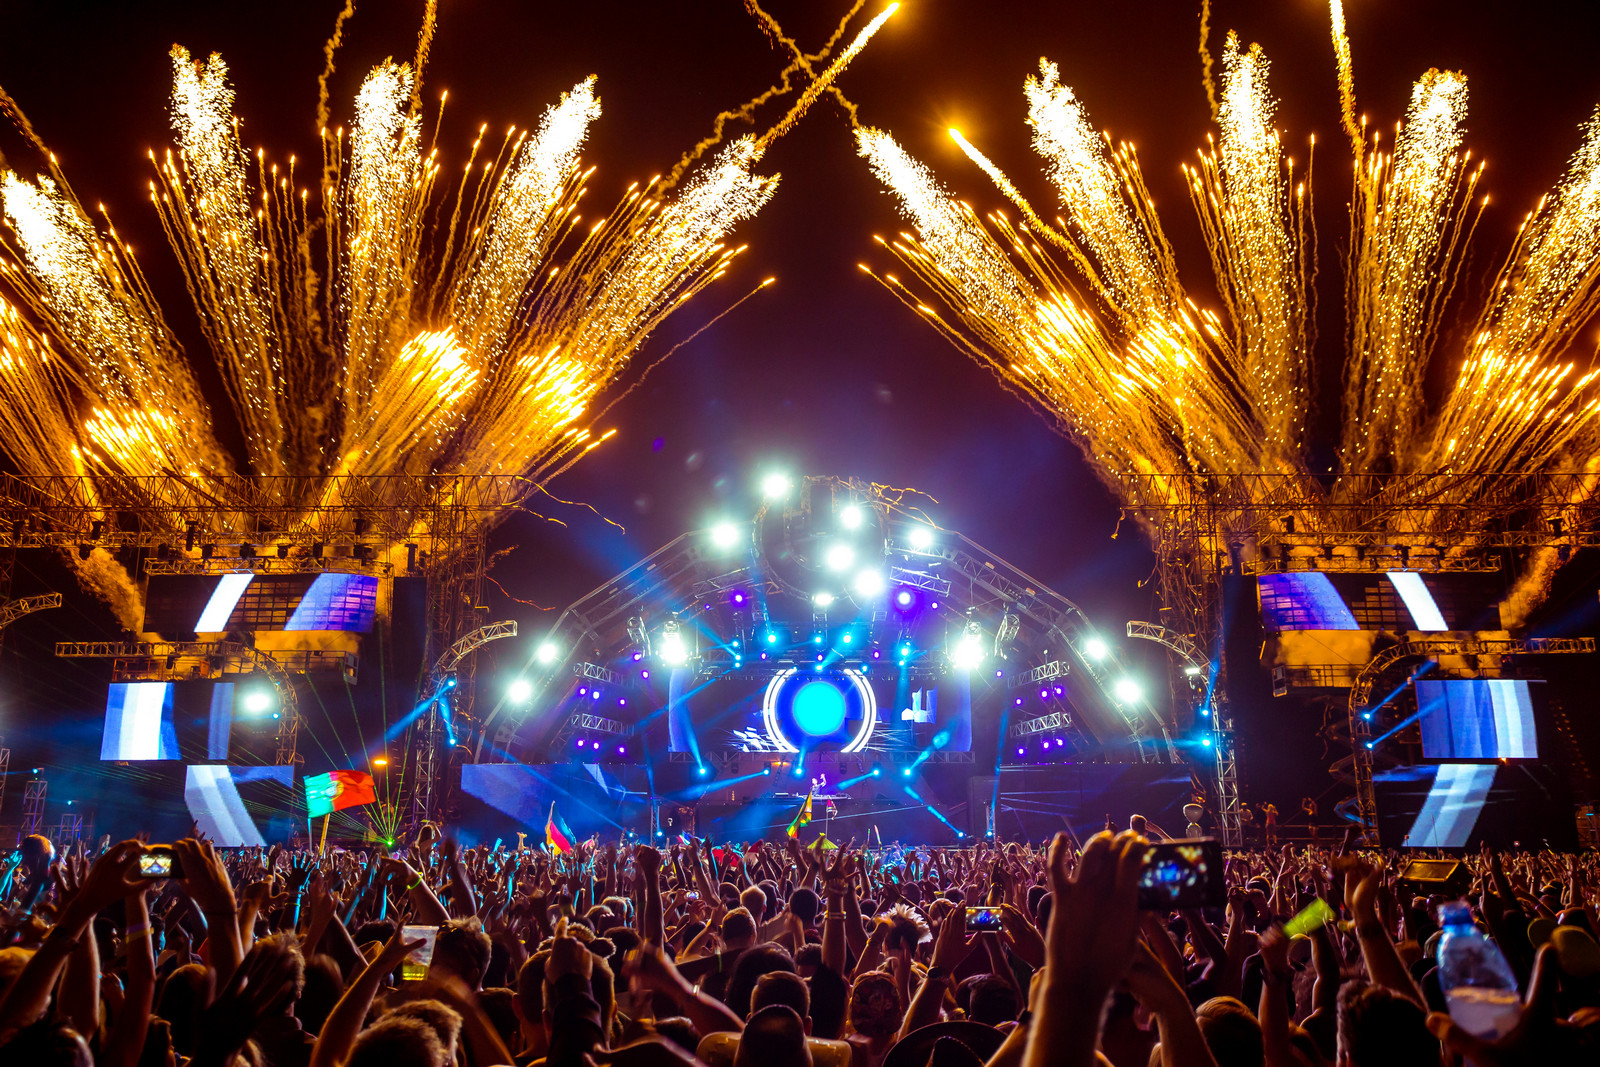 What makes EDM such an amazing and spectacular culture? - EDMofy